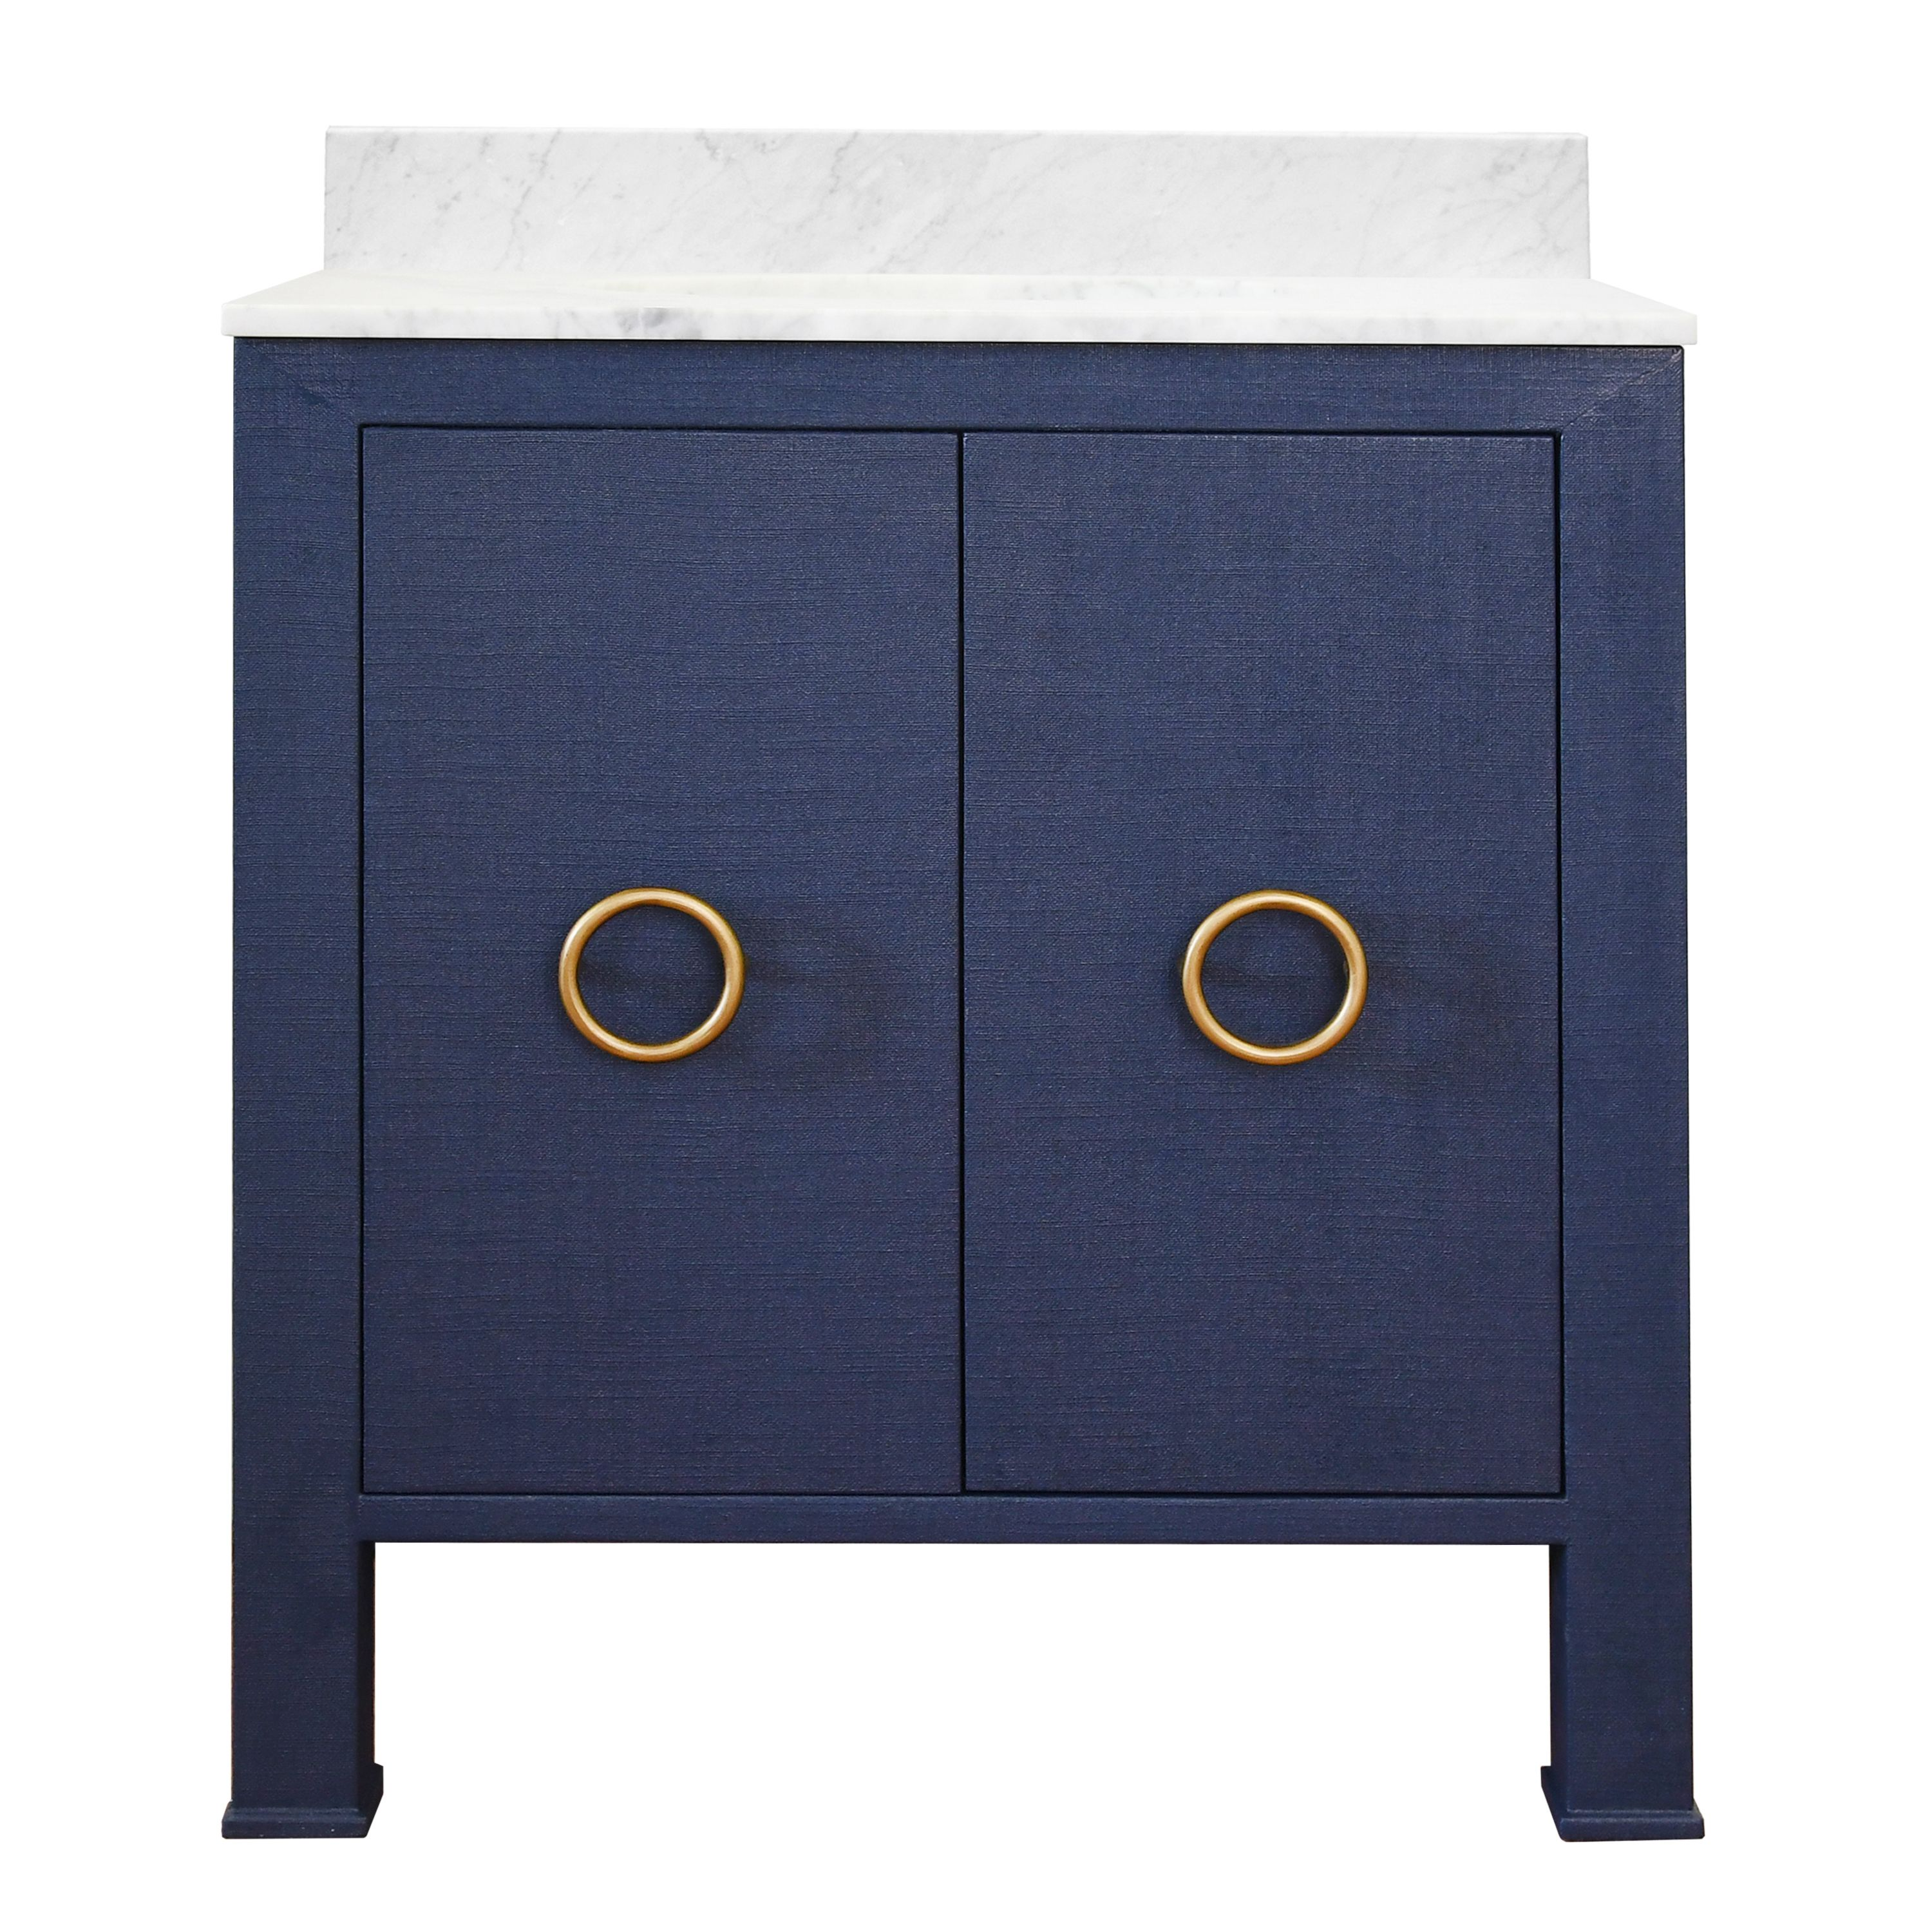 30 Issac Edwards Collection Bath Vanity In Textured Navy Linen W Antique Brass Hardware White Marble Top And Porcelain Sink